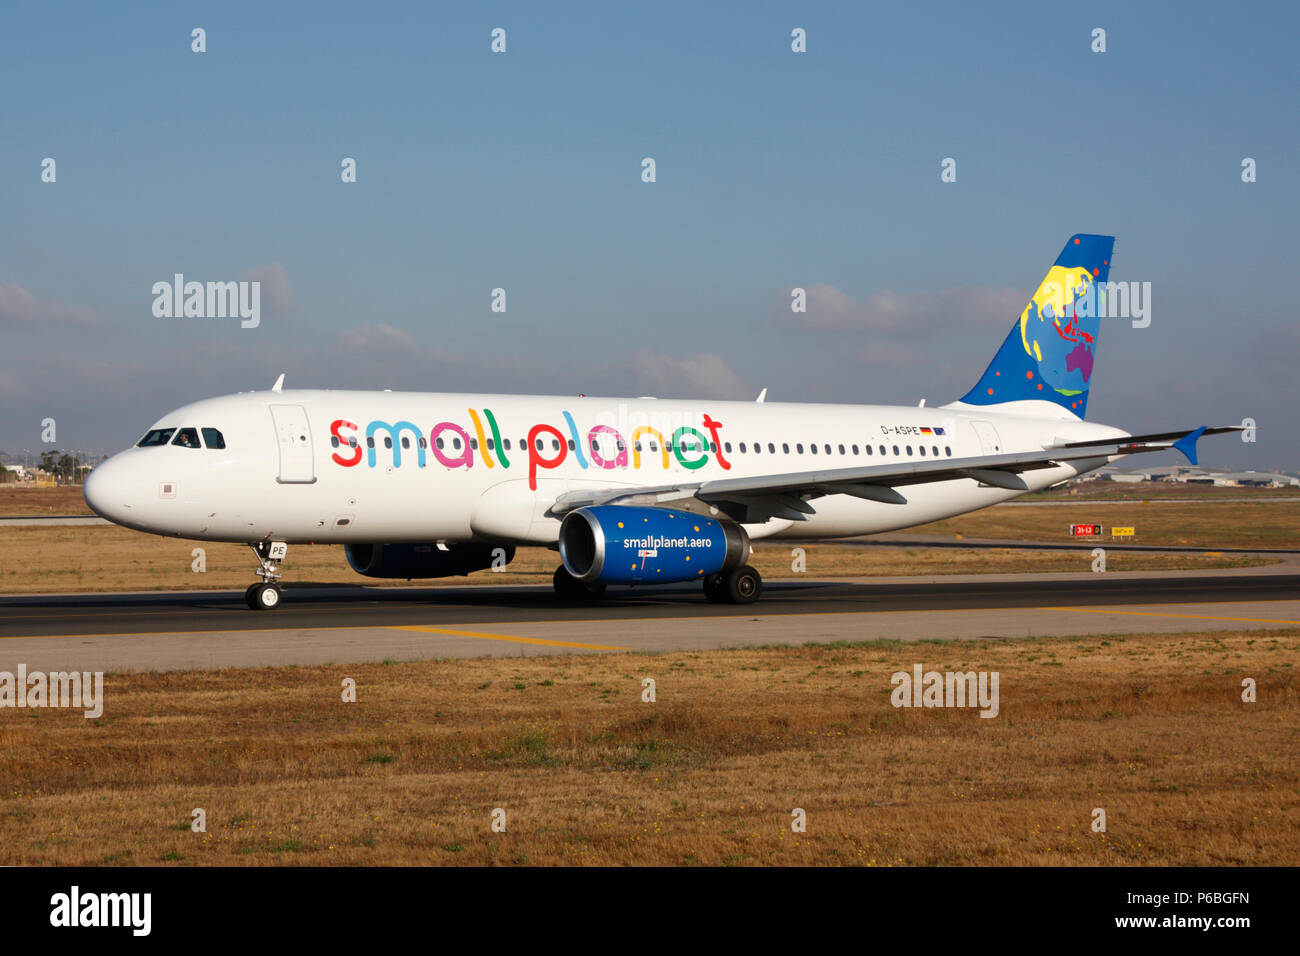 Airbus A320 passenger jet belonging to Lithuanian airline Small Planet Airlines taxiing for departure from Malta. Air travel in the European Union. - Stock Image